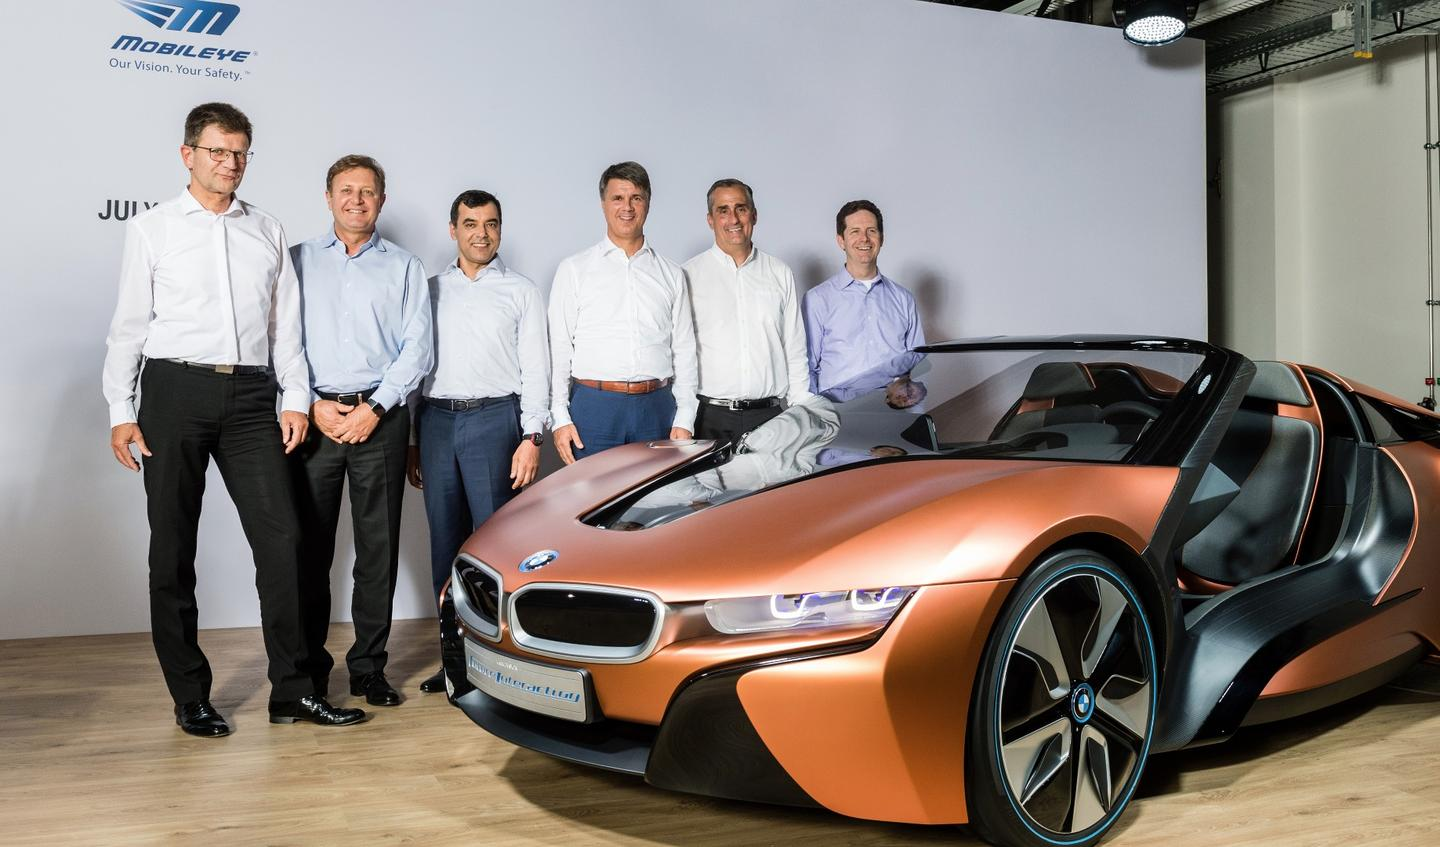 Intel, Mobileye and BMW bigwigs alongside BMW's precursor to the iNEXT